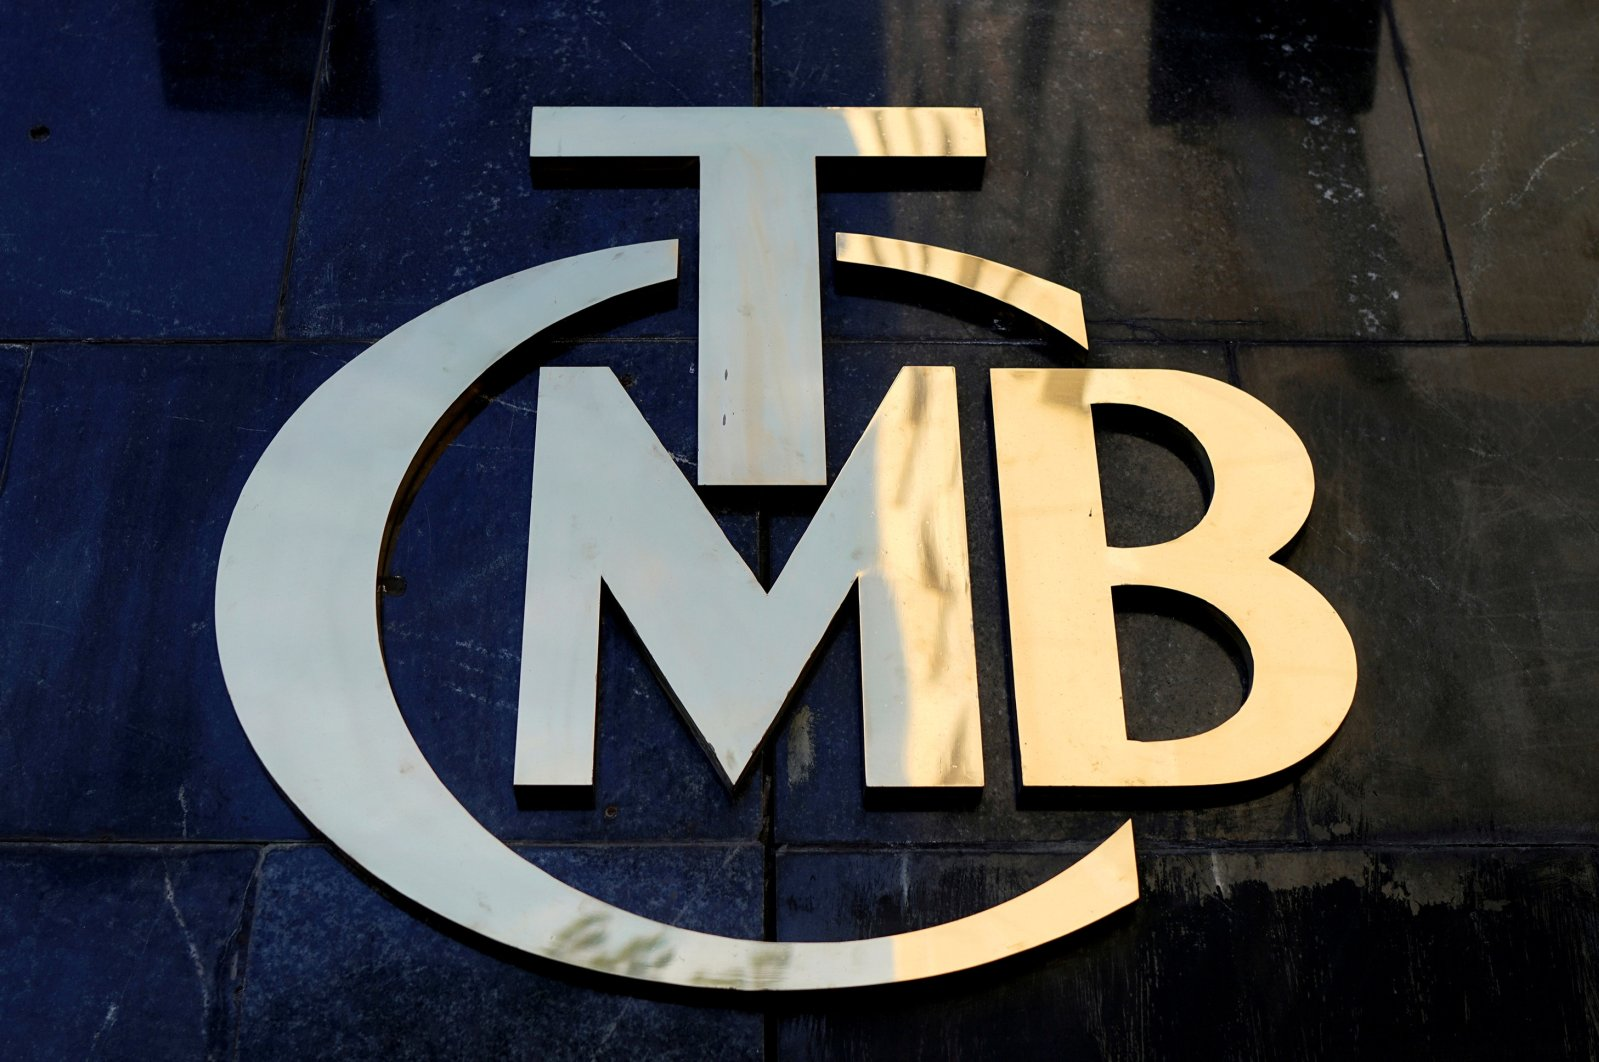 The logo of the Central Bank of the Republic of Turkey at the entrance of the bank's headquarters in Ankara, Turkey. (Reuters Photo)